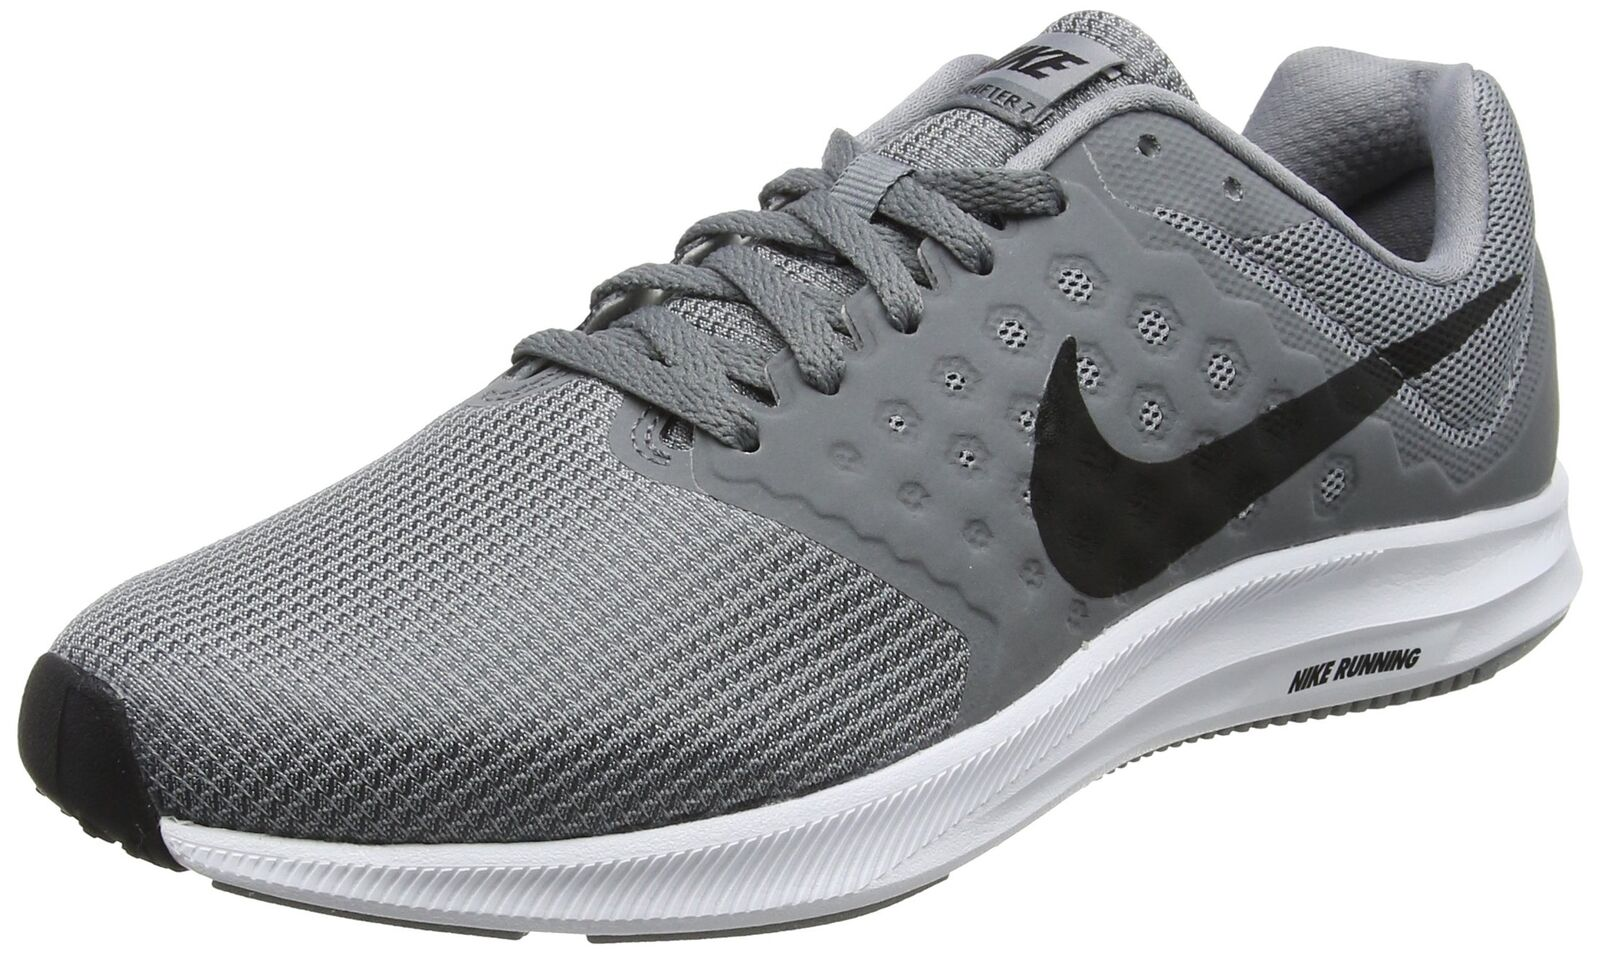 NIKE Men's Downshifter 7 Running shoes Stealth Black Cool Grey White Size 8 M US